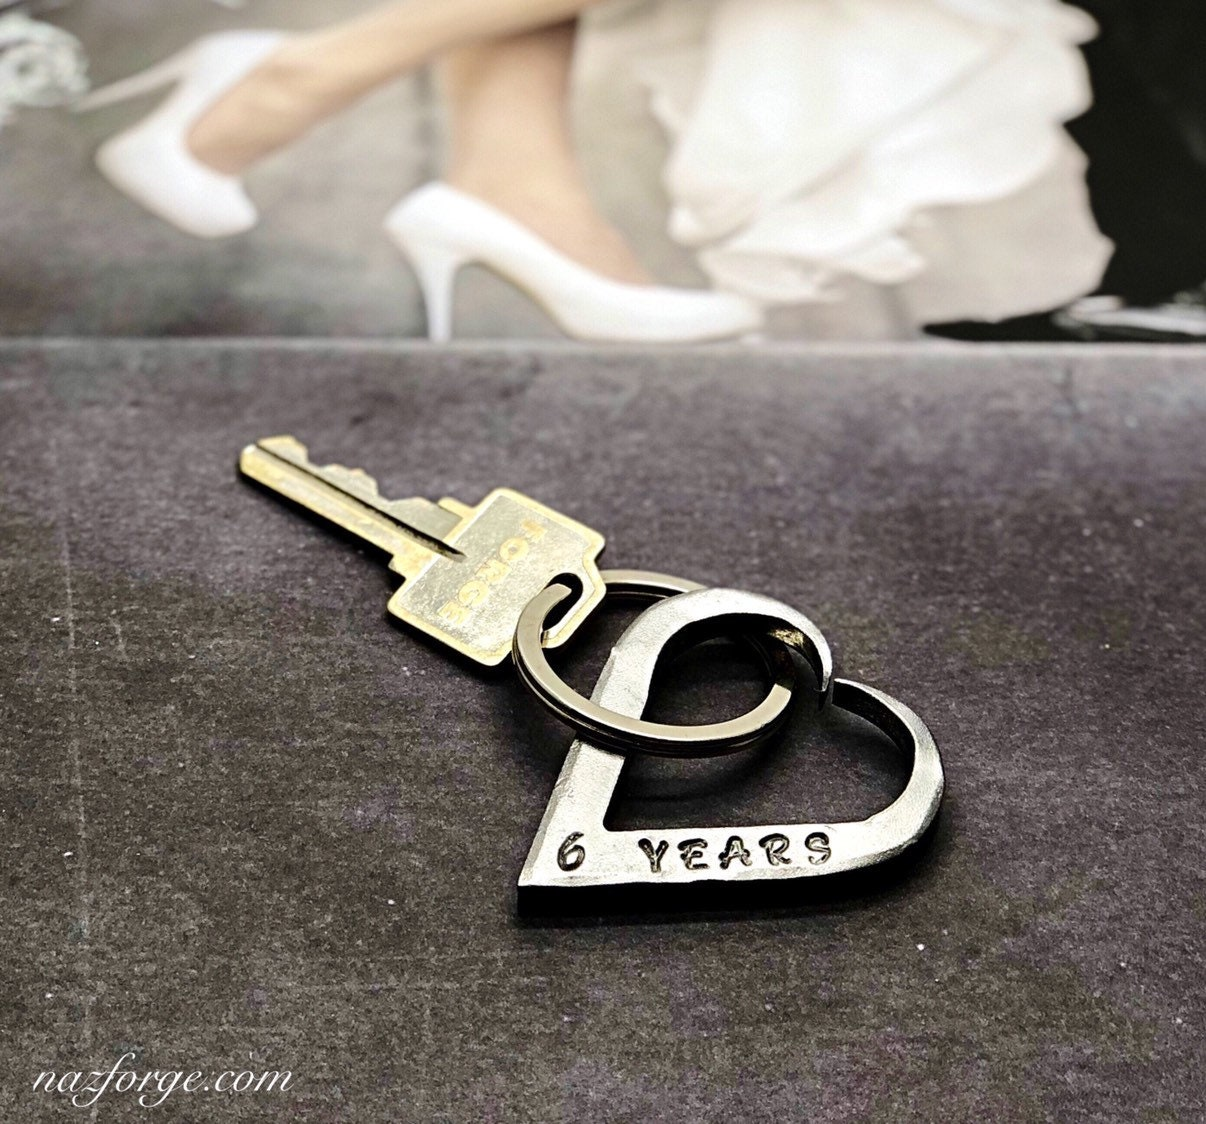 6th Wedding Anniversary Iron Keychain Gift Idea For Wife